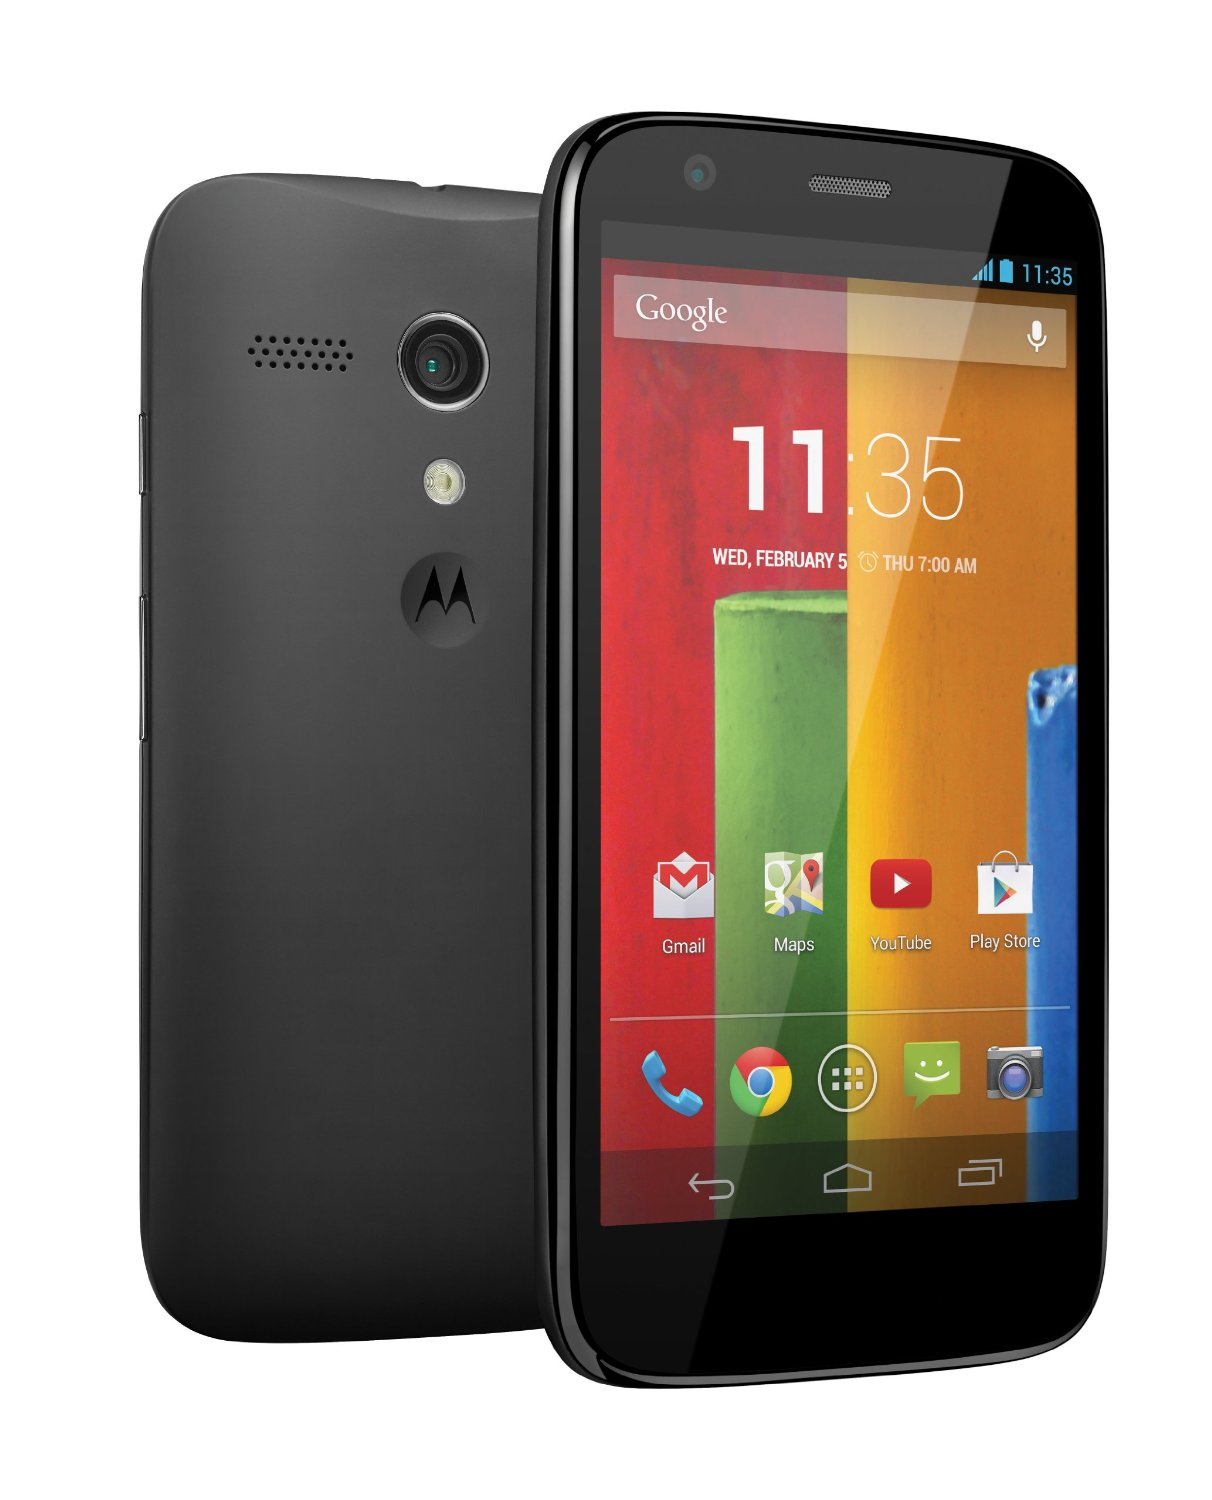 Motorola Moto G 8GB GPS WiFi 3G Android Smart Phone CricKet GSM